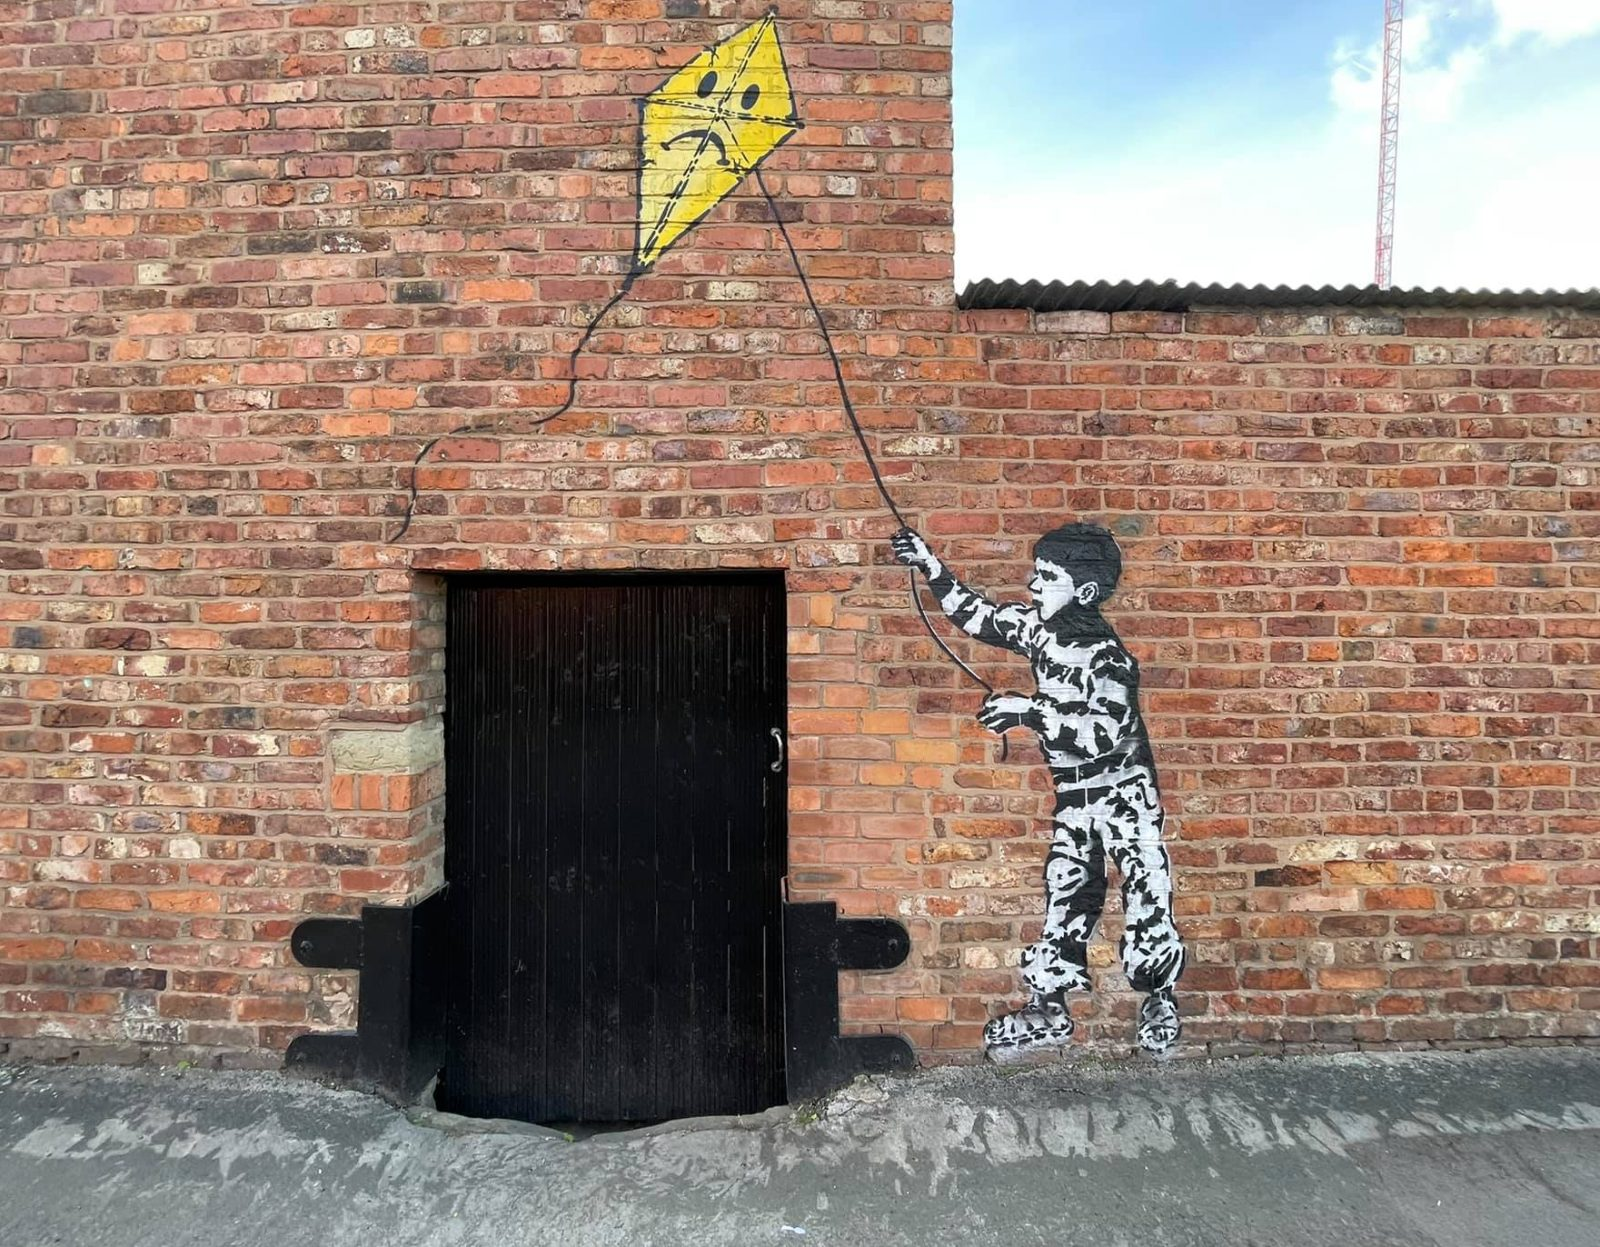 This is the real artist behind that 'Banksy' street art mural in Stockport, The Manc